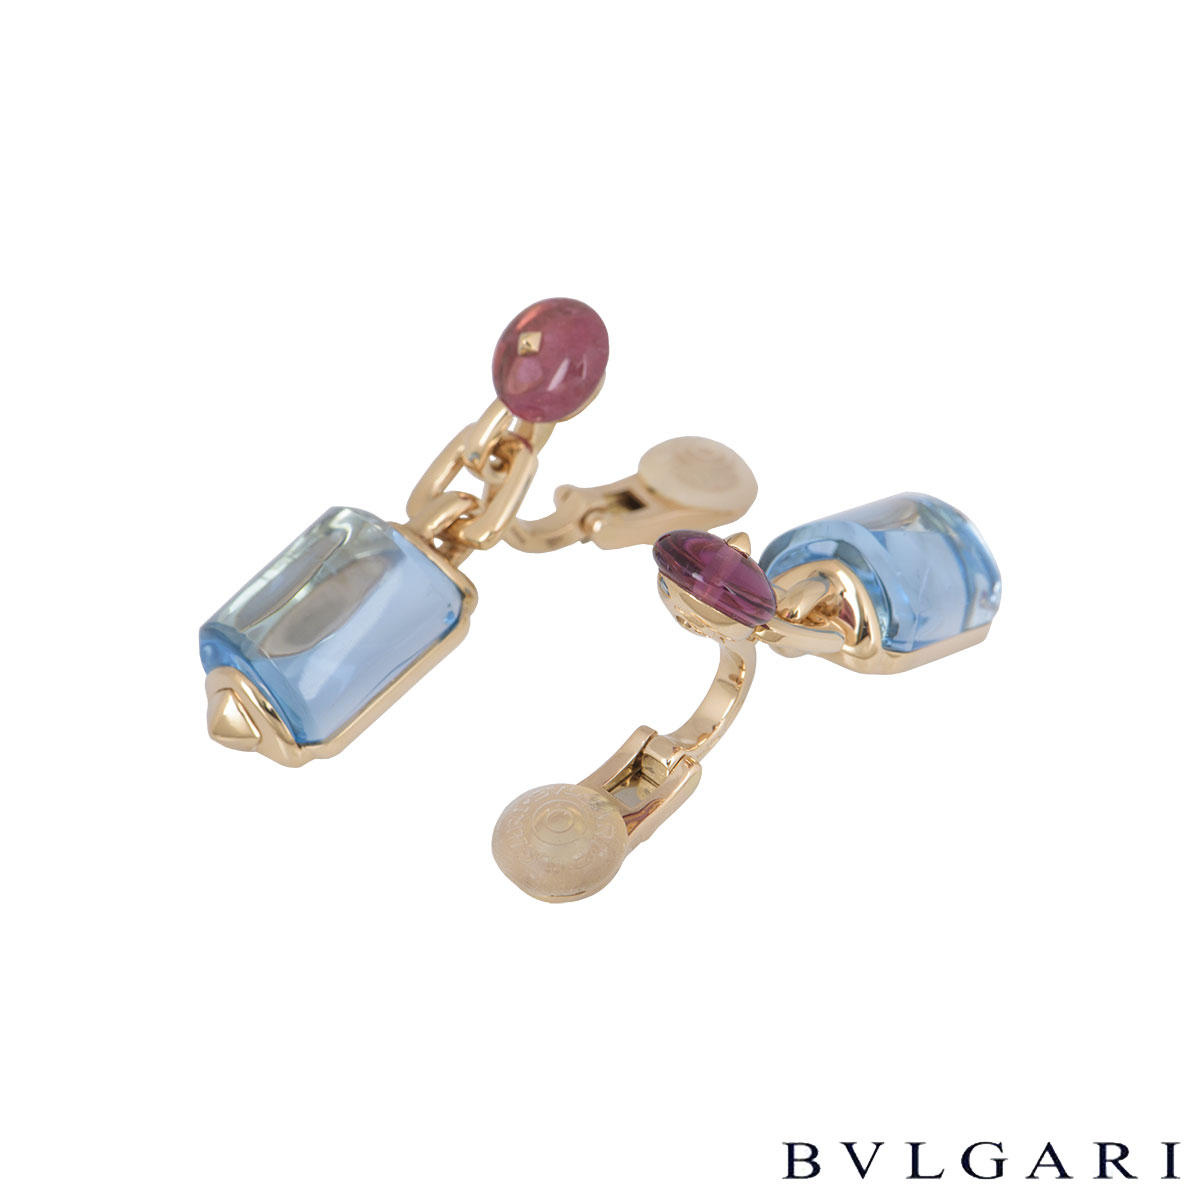 Bvlgari Rose Gold Amethyst And Aquamarine Earrings